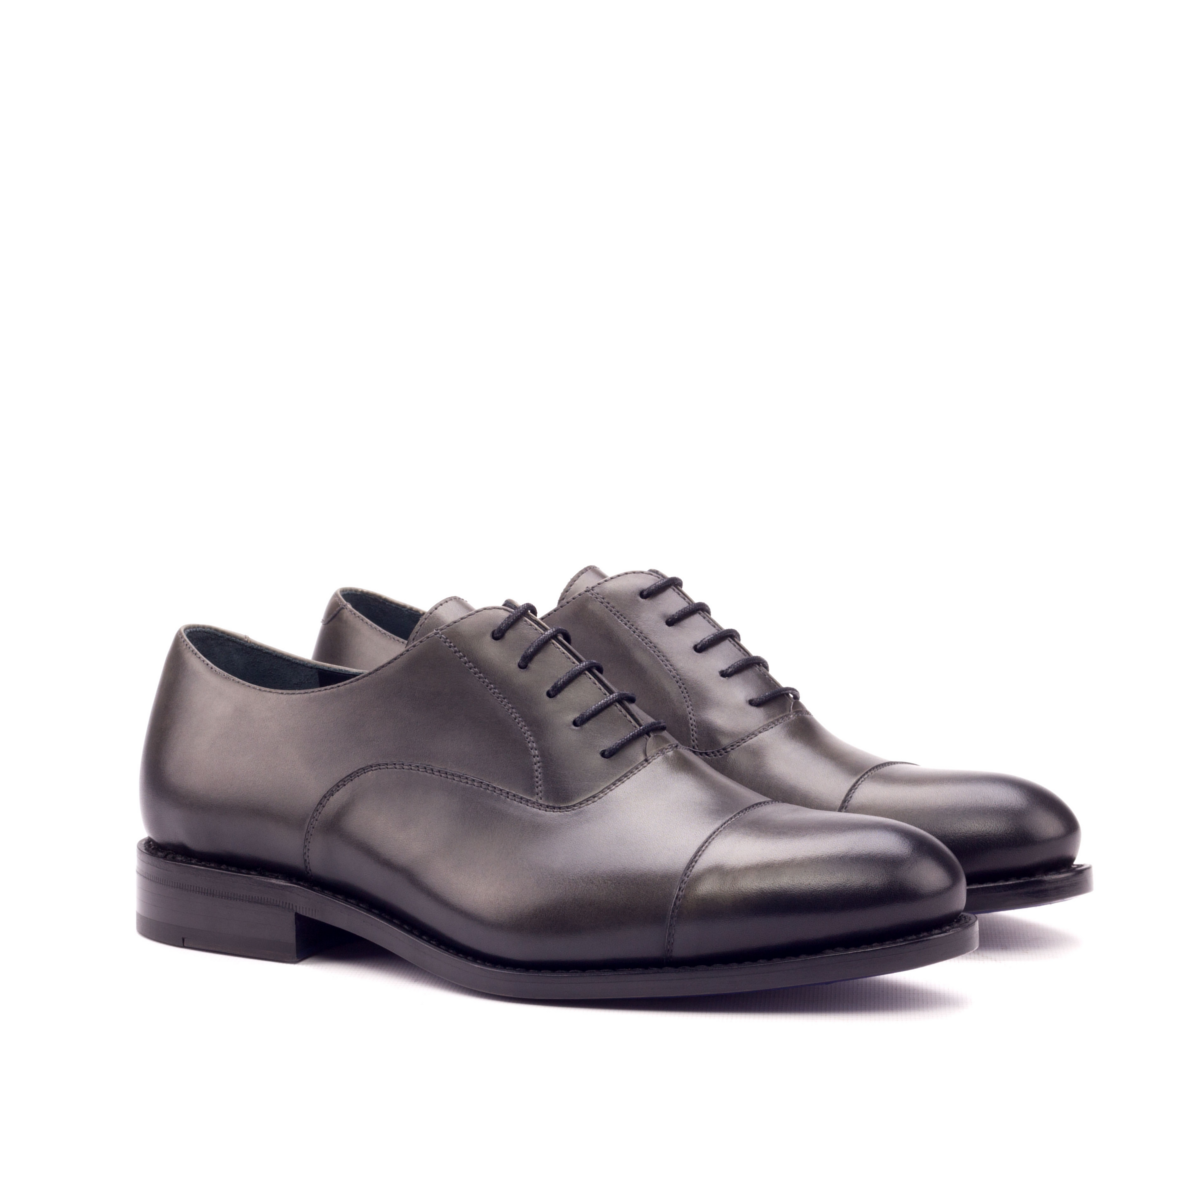 Grey hand-brushed Oxford